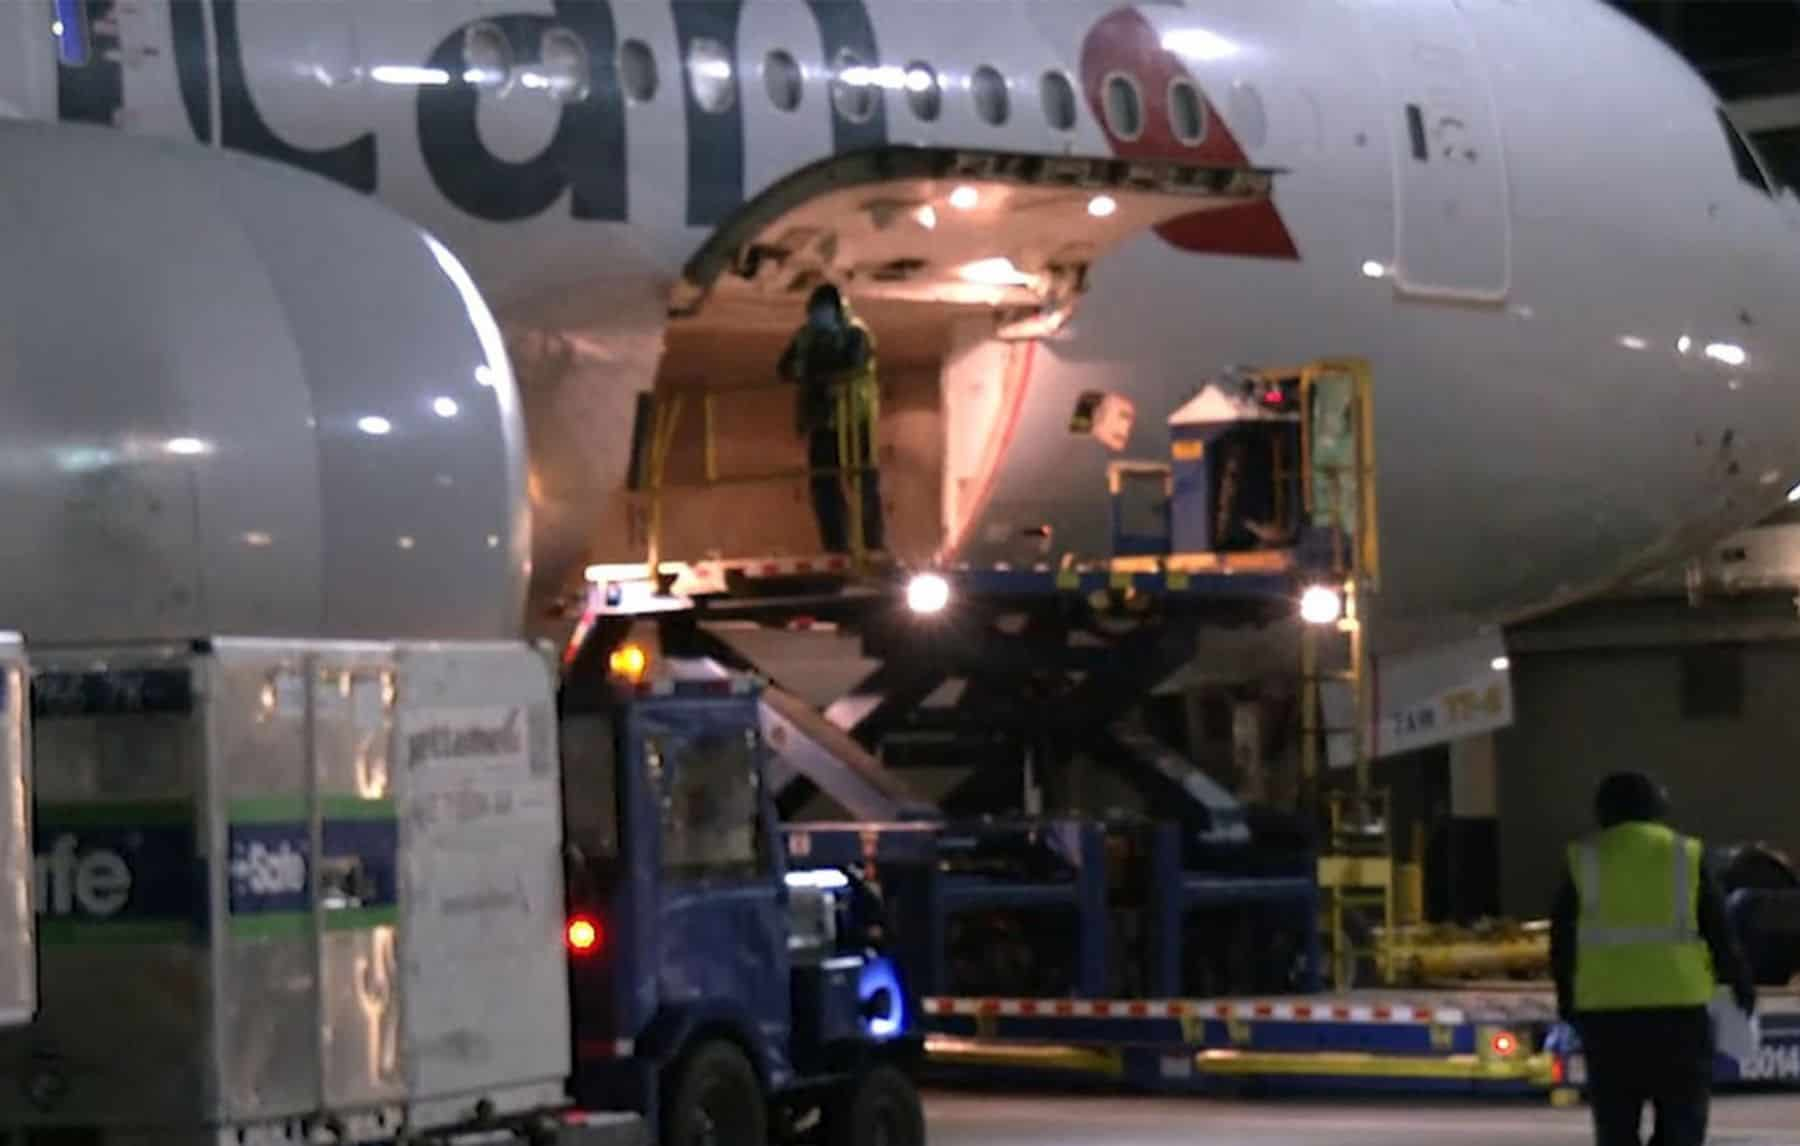 American Airlines transports its first Covid-19 caccine shipment from Chicago to Miami